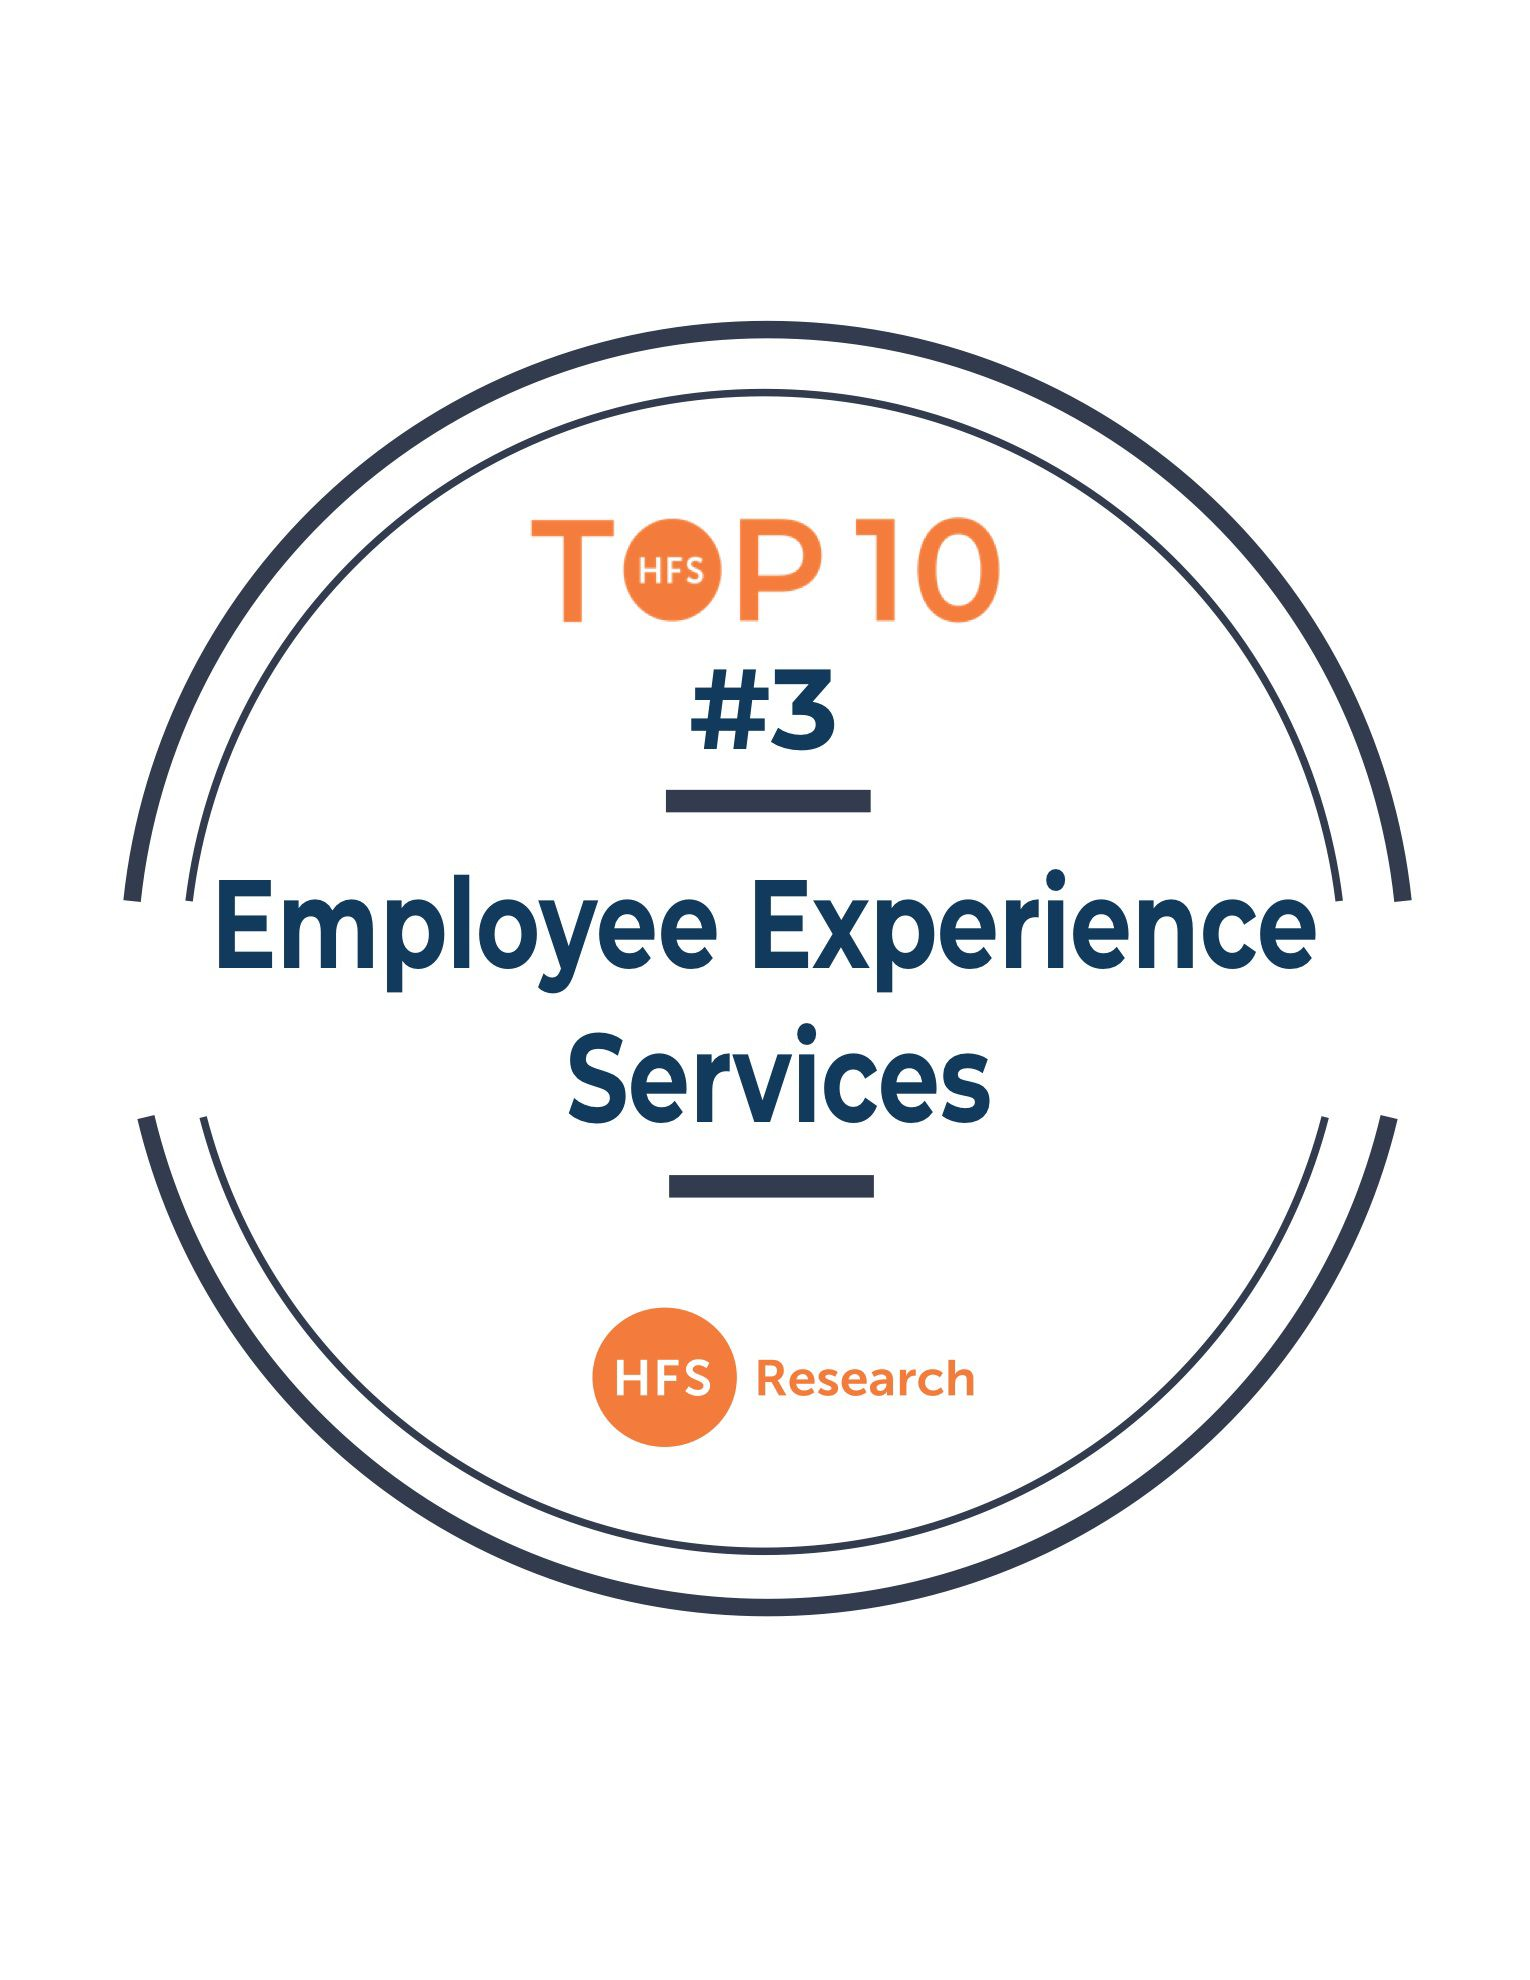 Employee experience services